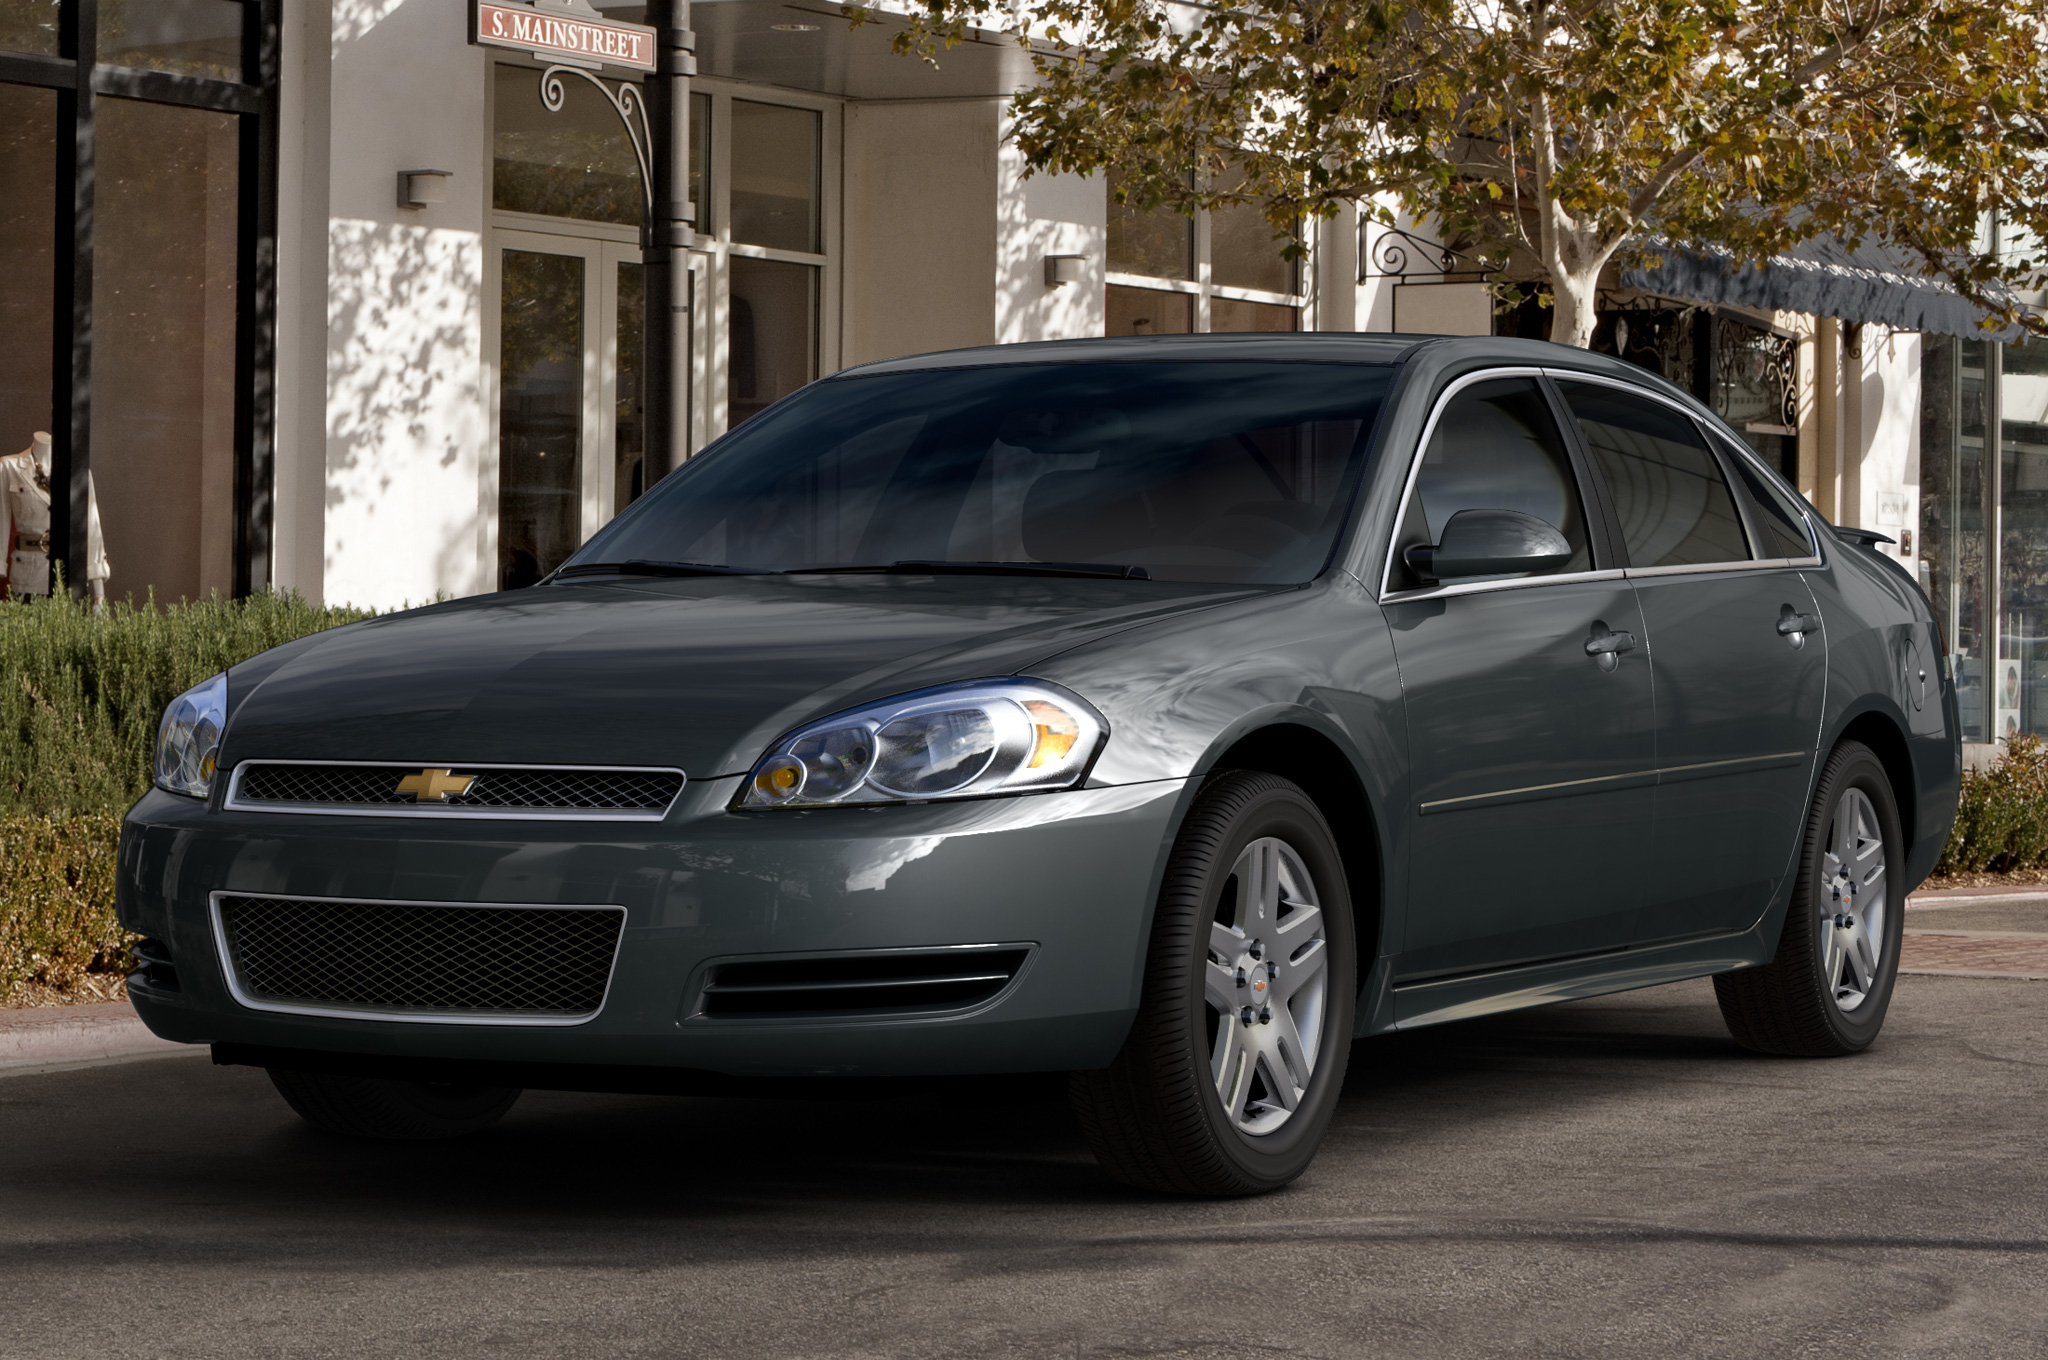 hight resolution of chevrolet impala limited production extended to 2016 for fleet use